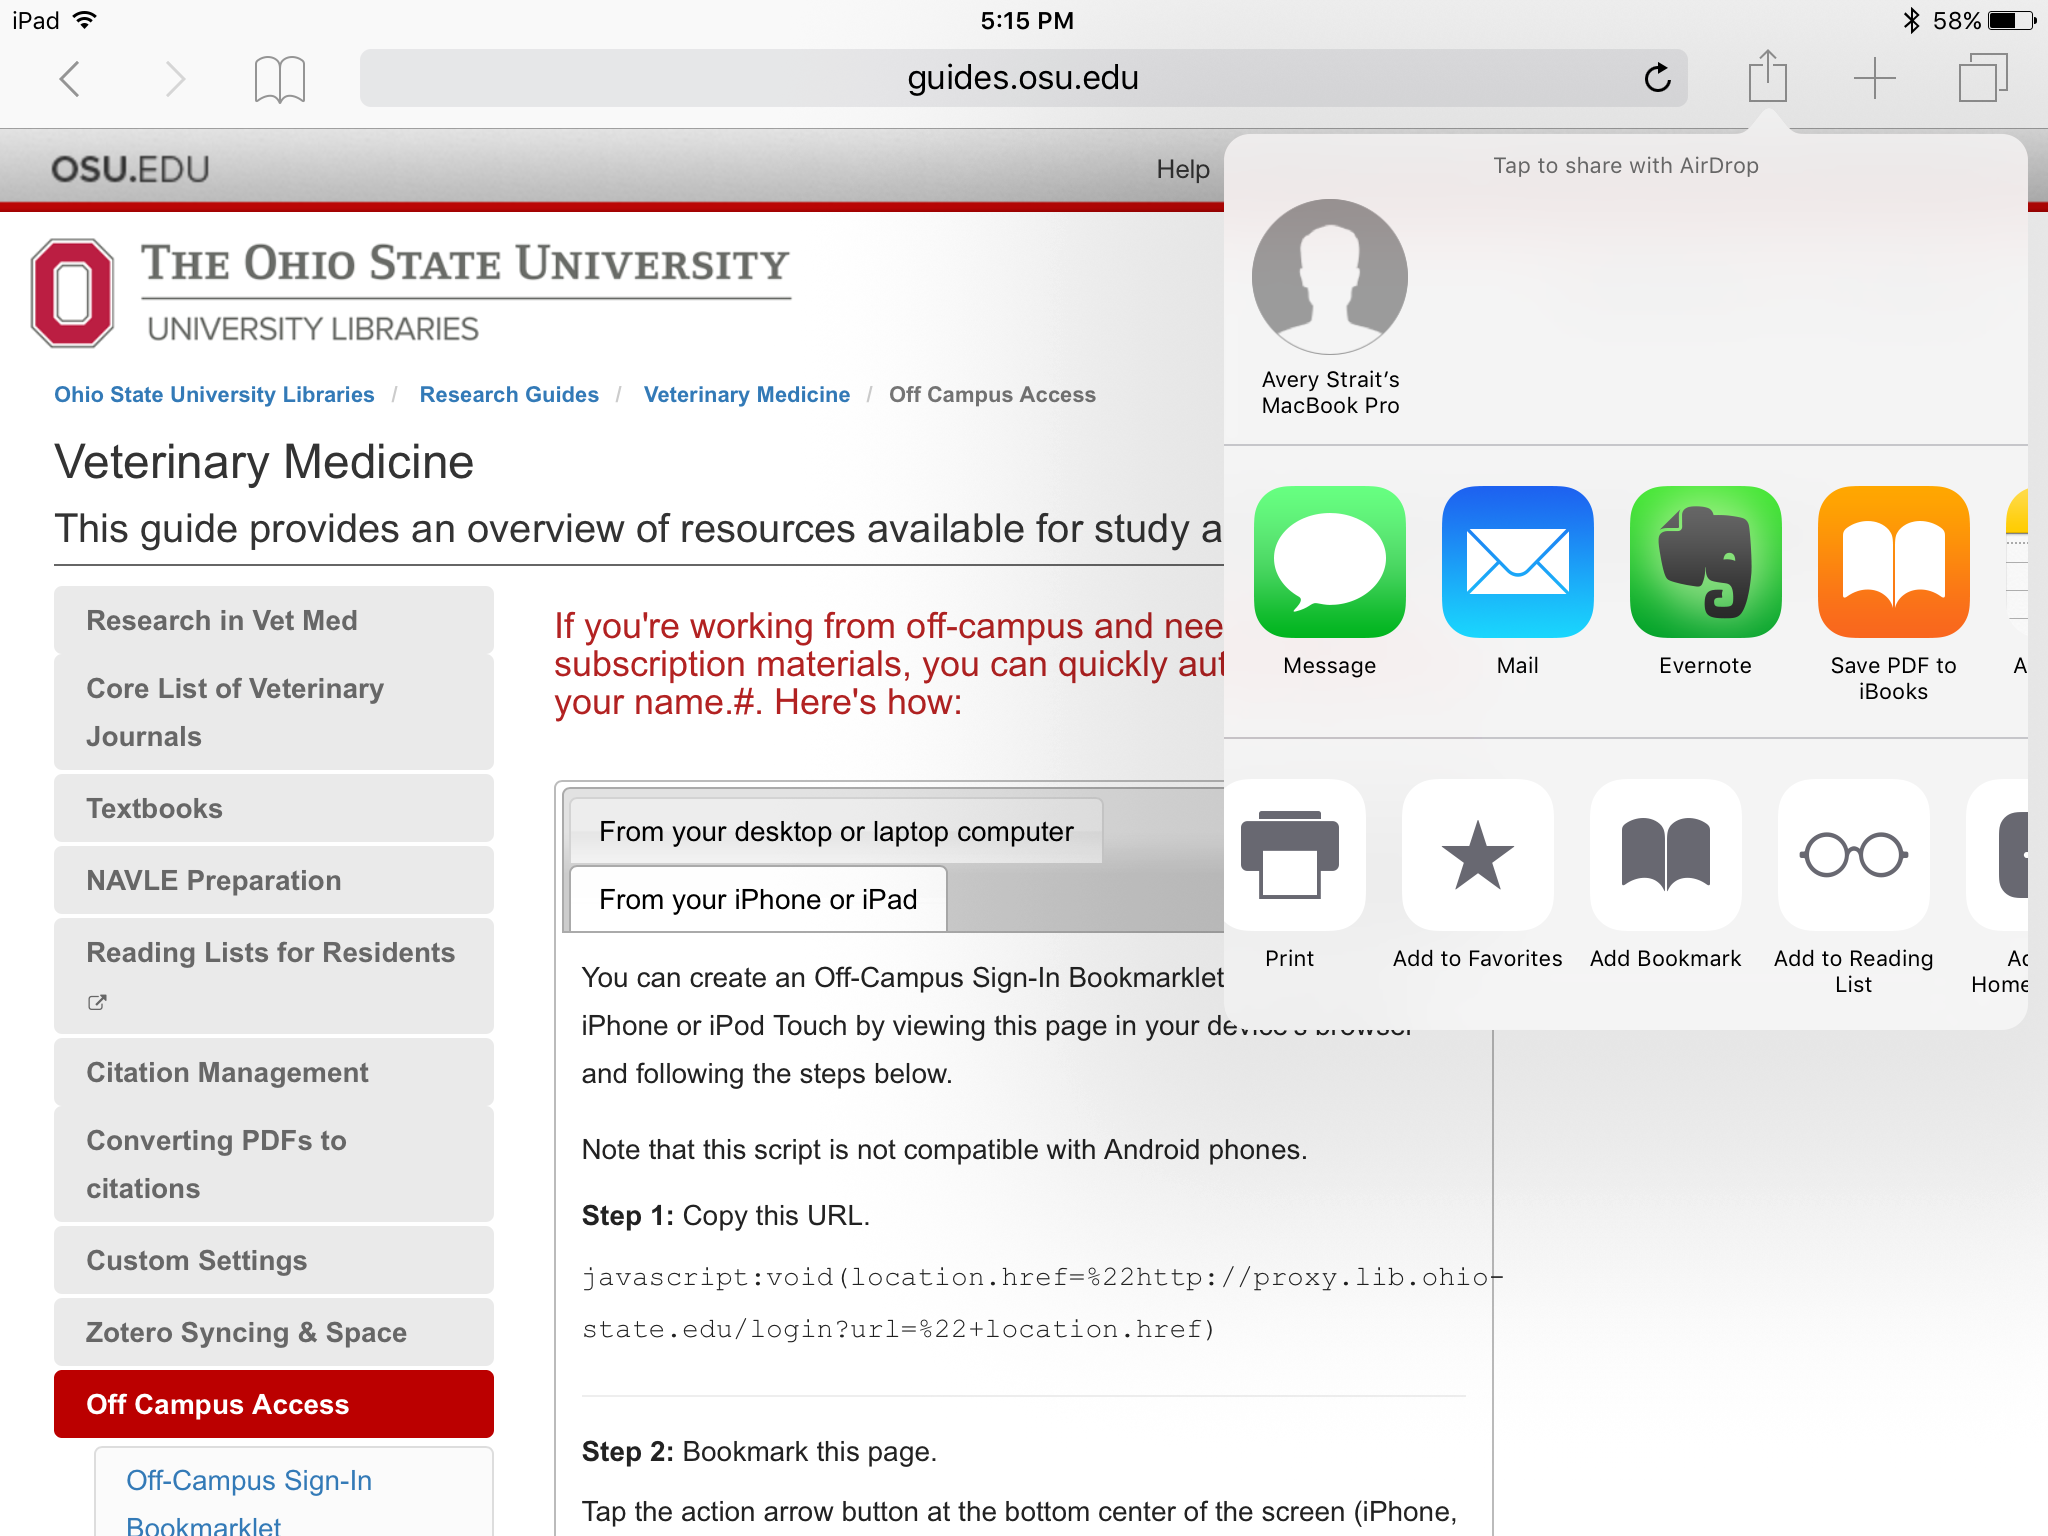 Screenshot showing how to bookmark this page on IPhone or iPad